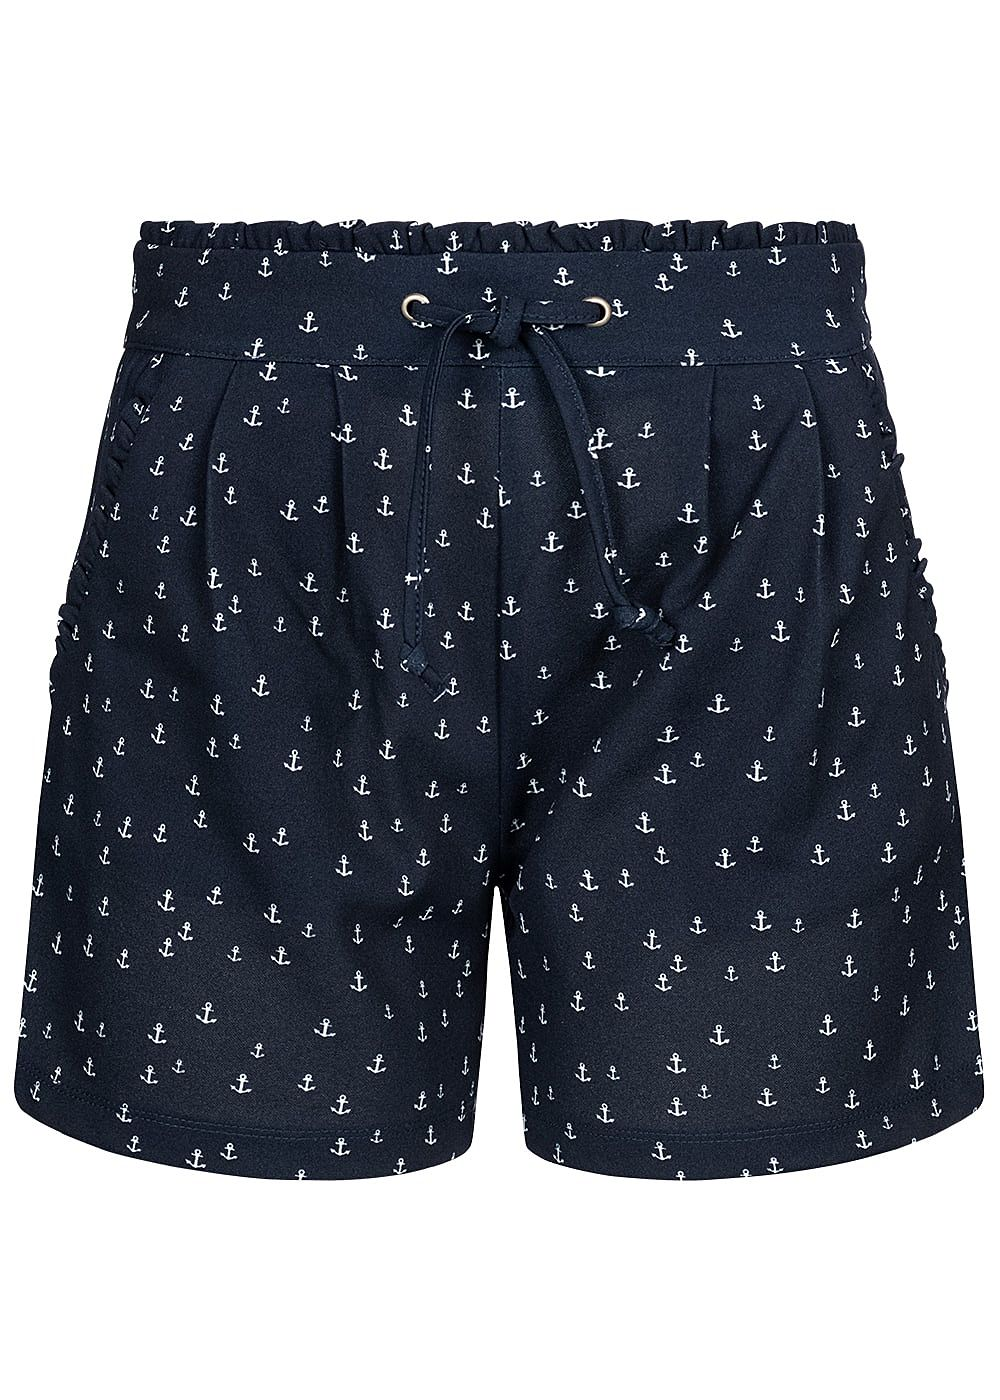 JDY by ONLY Damen Paper-Bag Shorts Anchor Print 2-Pockets sky captain blau weiss - Art.-Nr.: 19041357-XS-BL